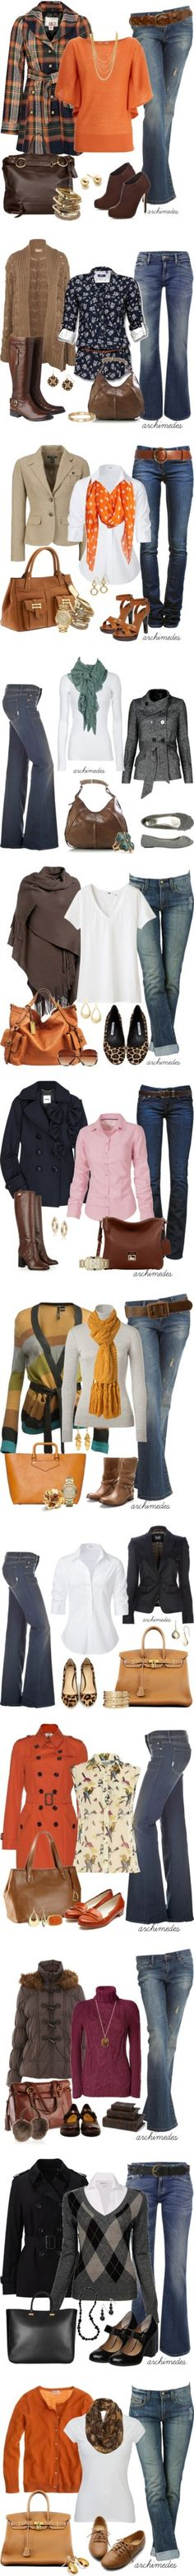 Dressed for Fall.. This has it all!